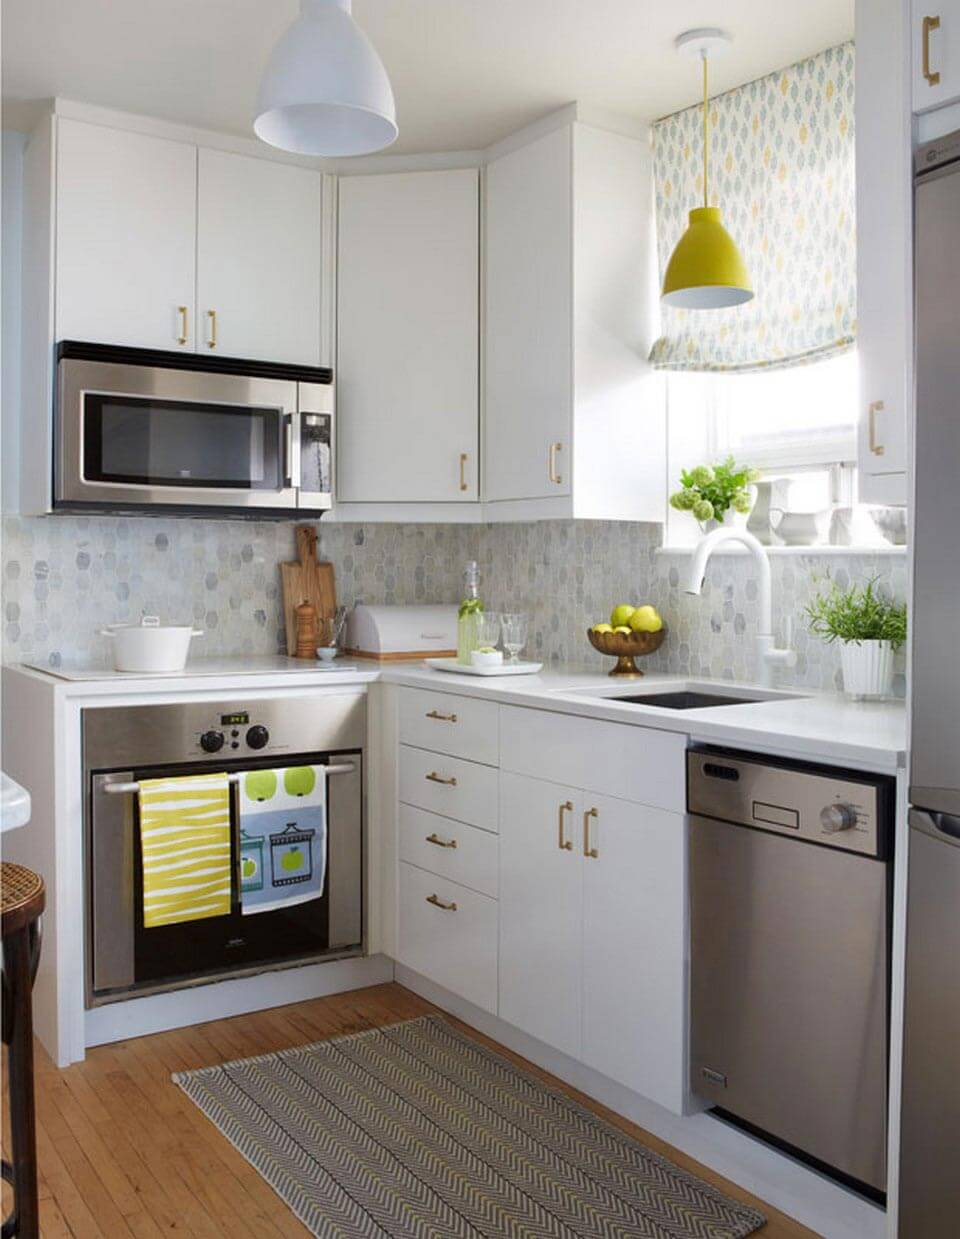 Kitchen Decor 30 Best Small Kitchen Decor And Design Ideas For 2019